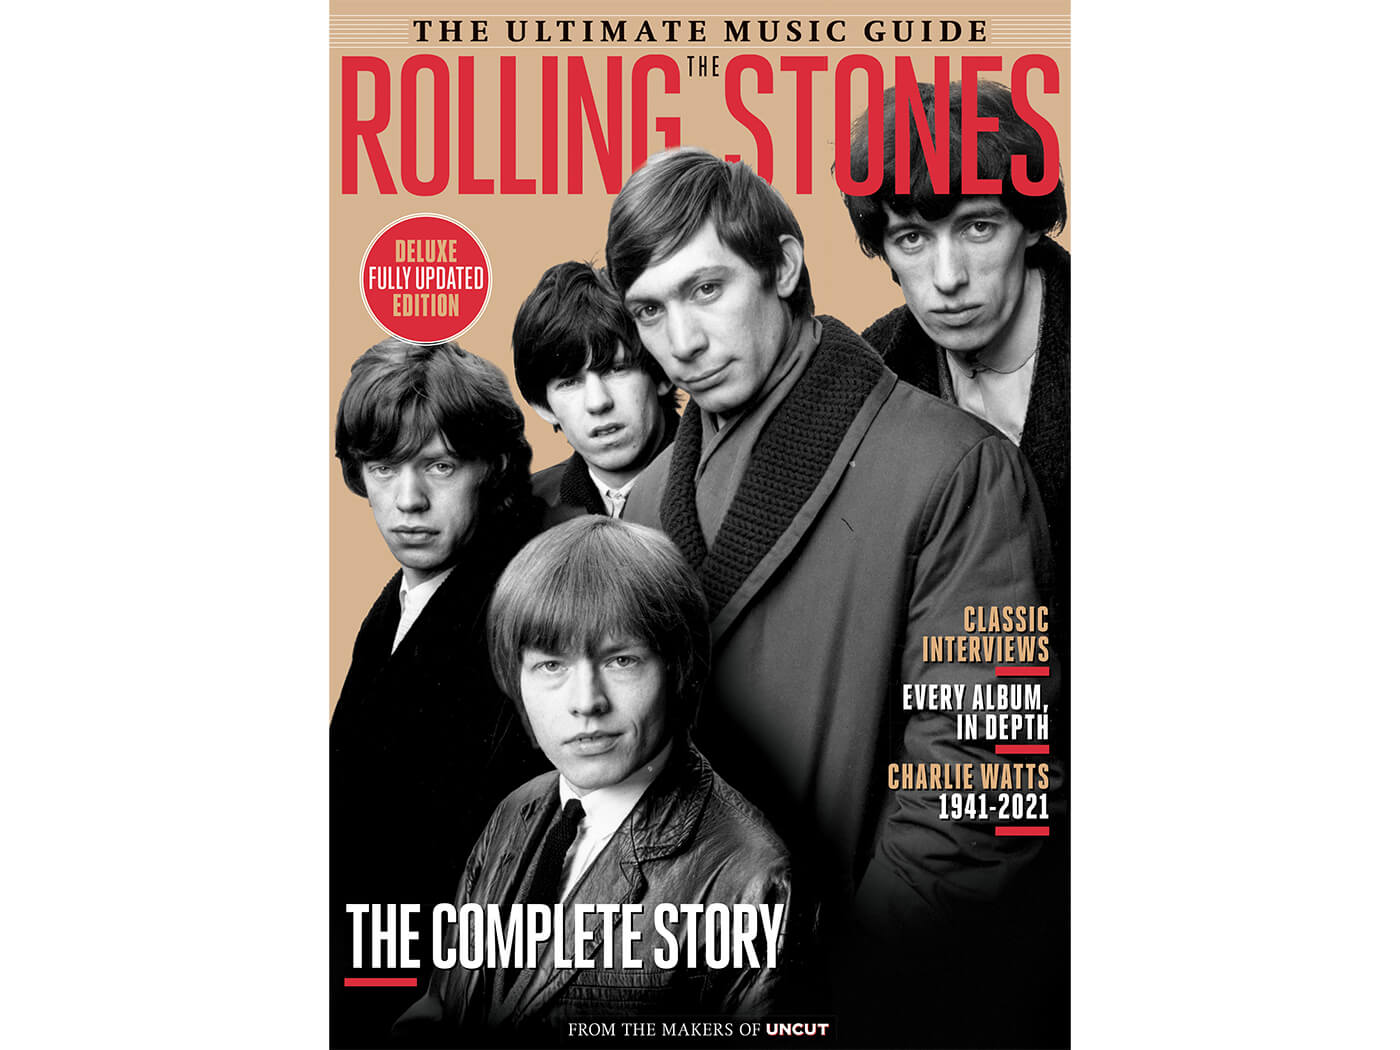 The Rolling Stones – The Ultimate Music Guide